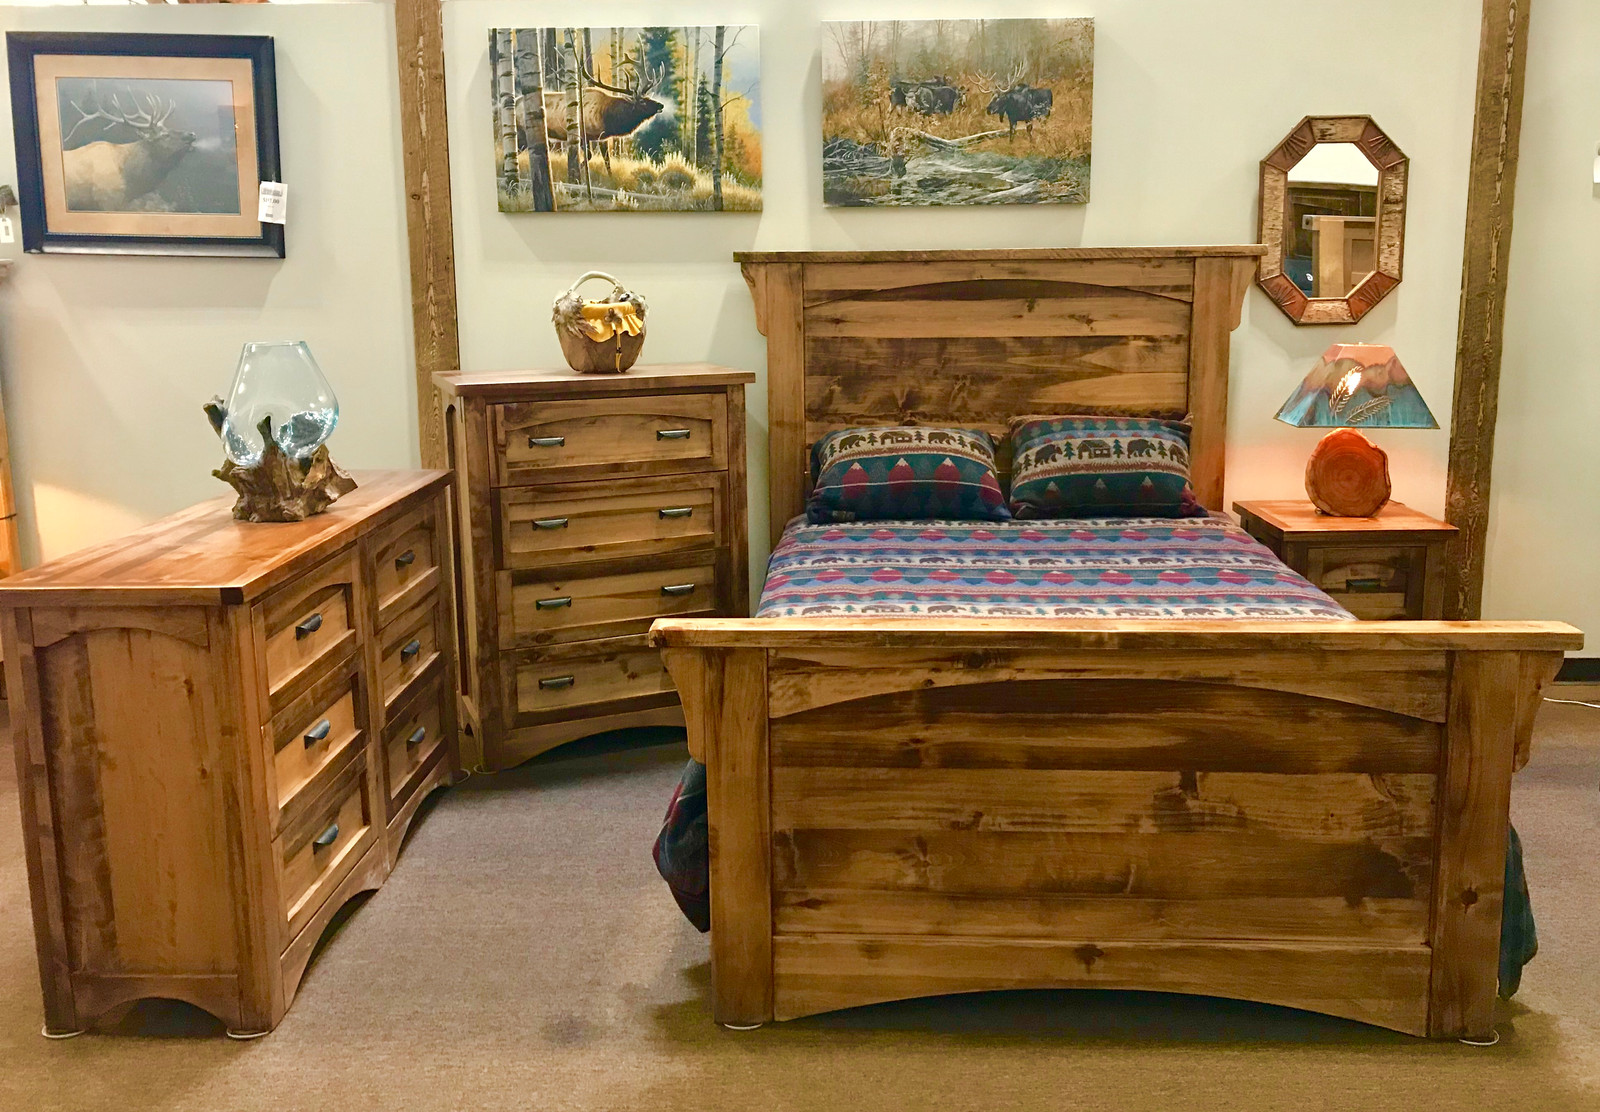 NEW! Woodlands Bedroom Set. Available Exclusively At Rustic Living Showrooms